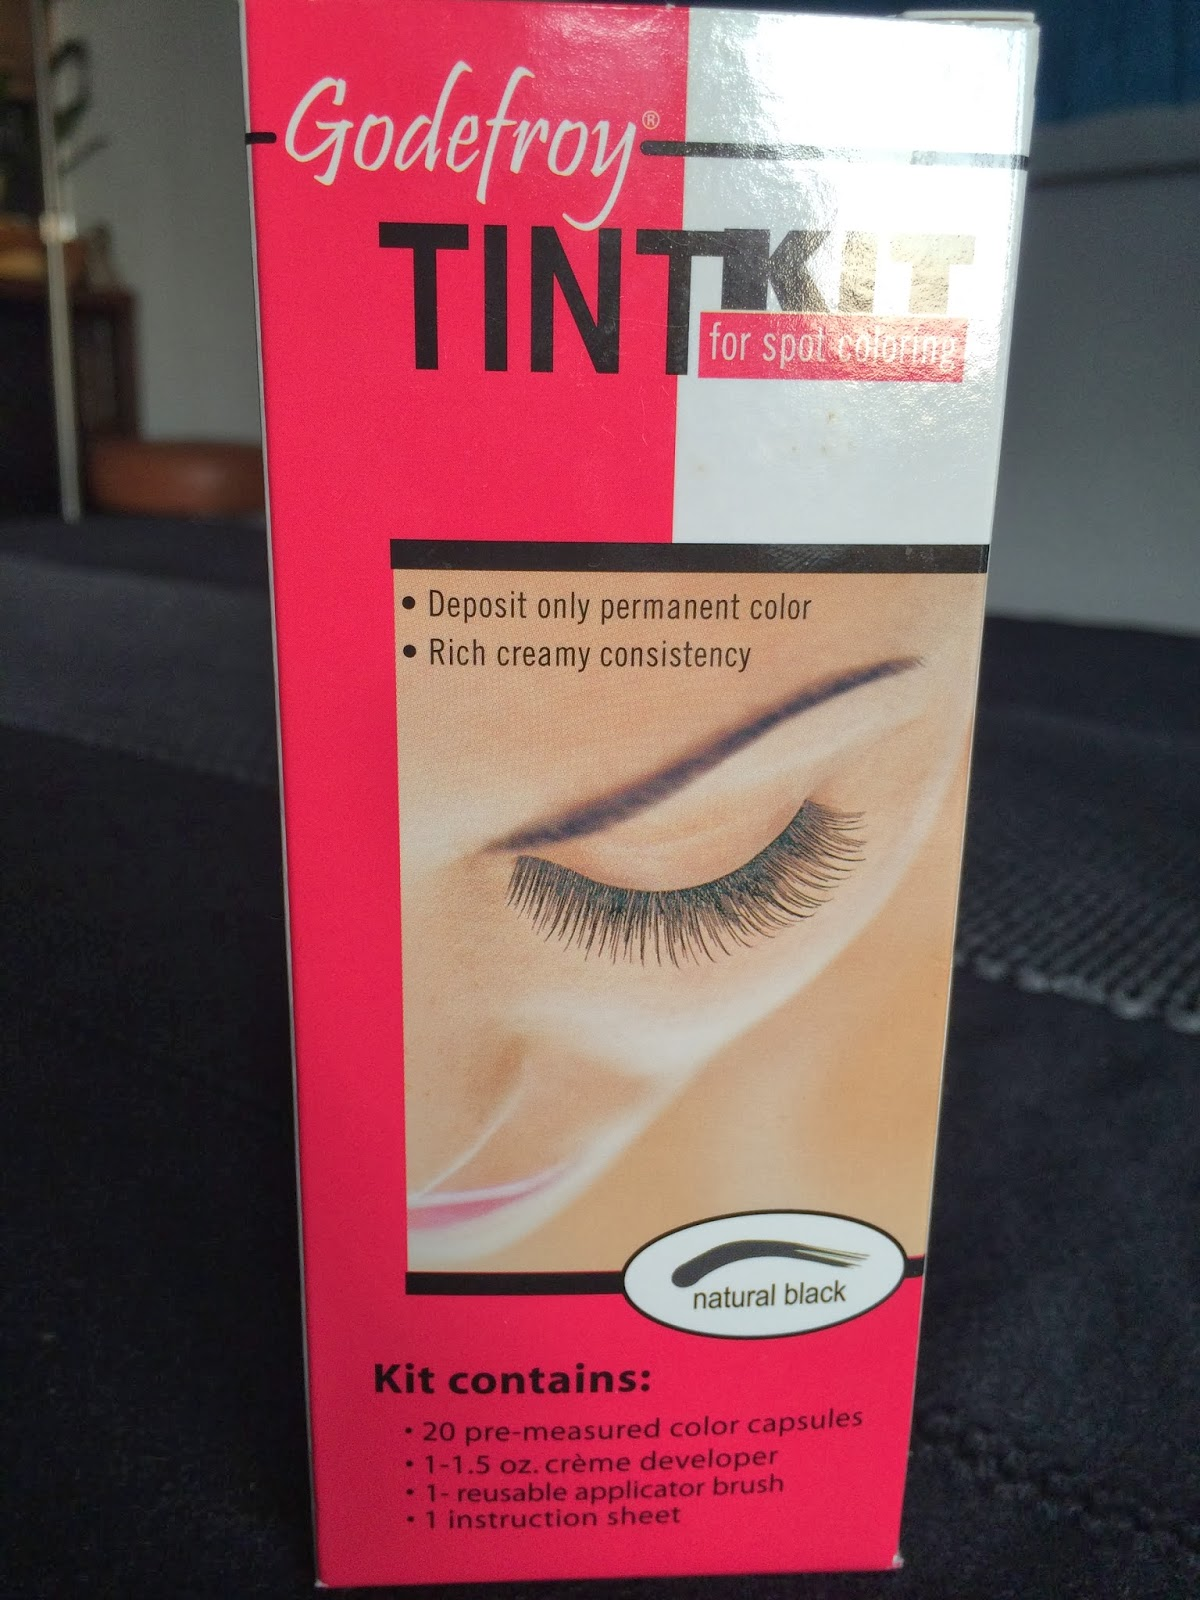 Beauty and Fashion lover: Review on Godefroy Eyebrow Tint for spot ...